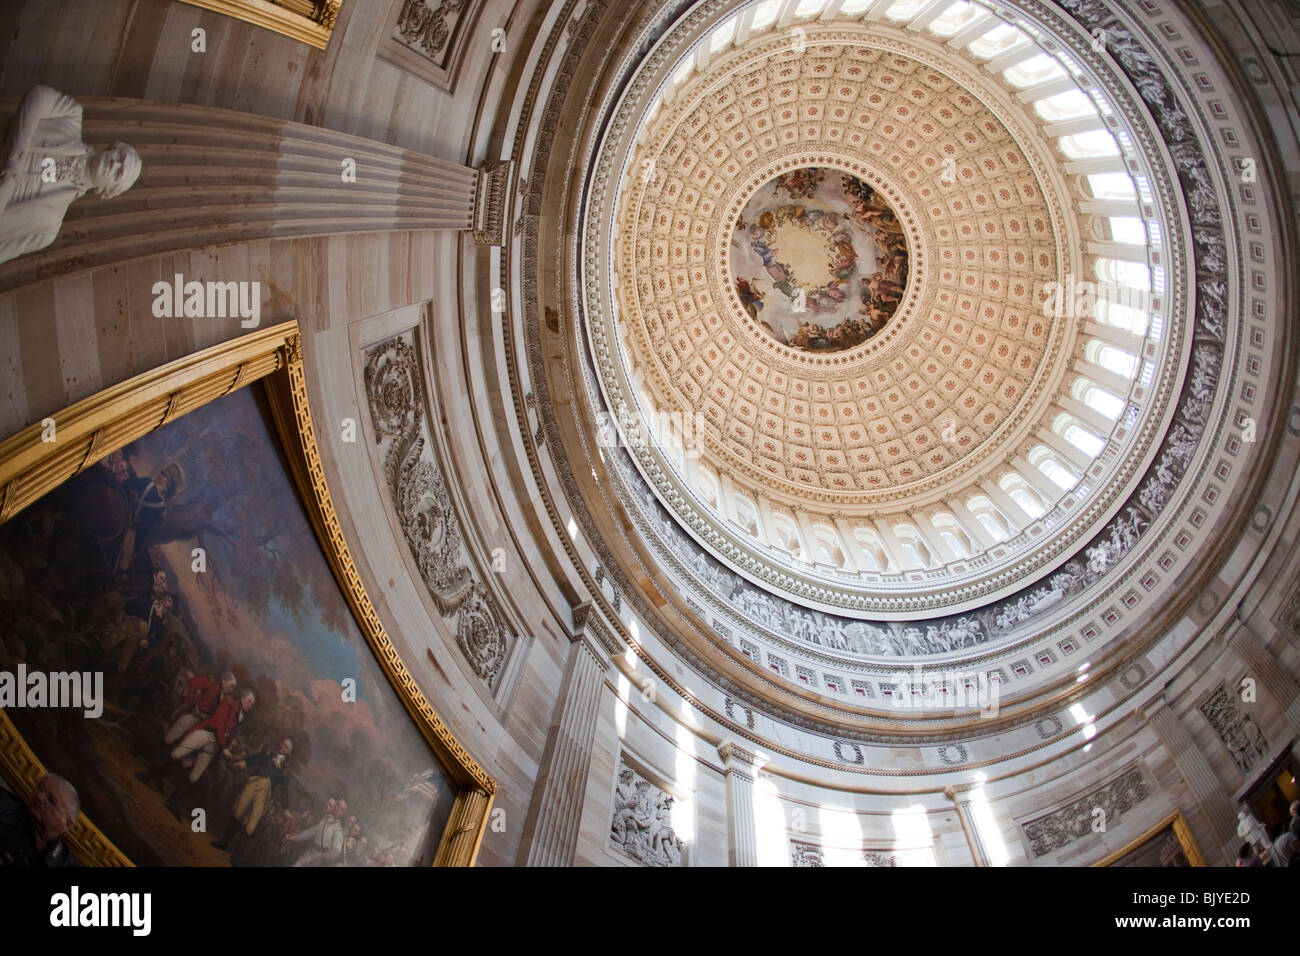 Rotunda and interior of the dome of the U.S. Capitol. - Stock Image